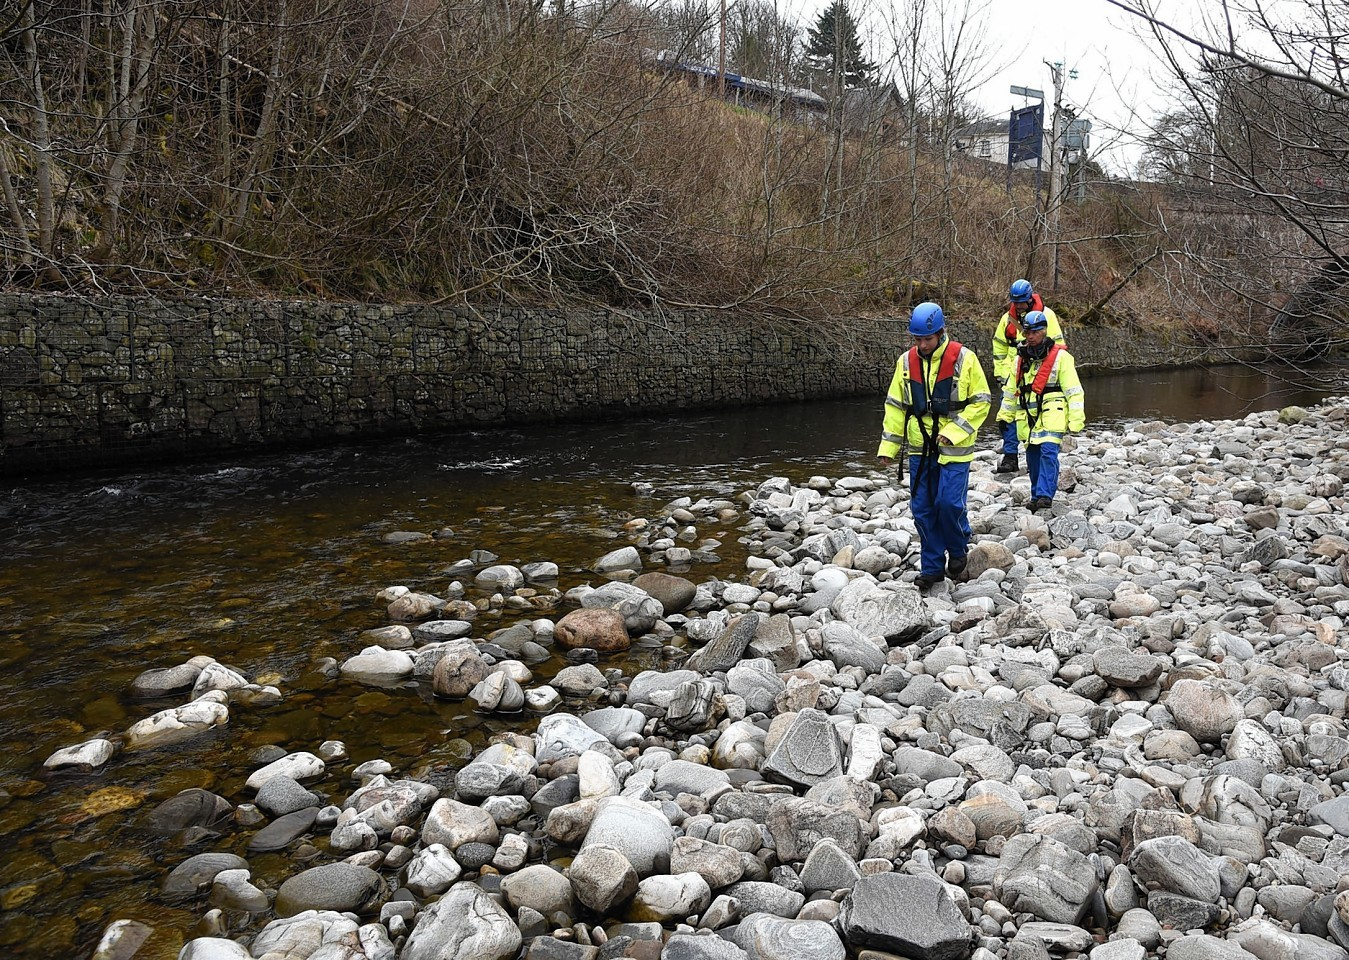 Coastguard from Cromarty and Inverness search the River Enrick in Drumnadrochit